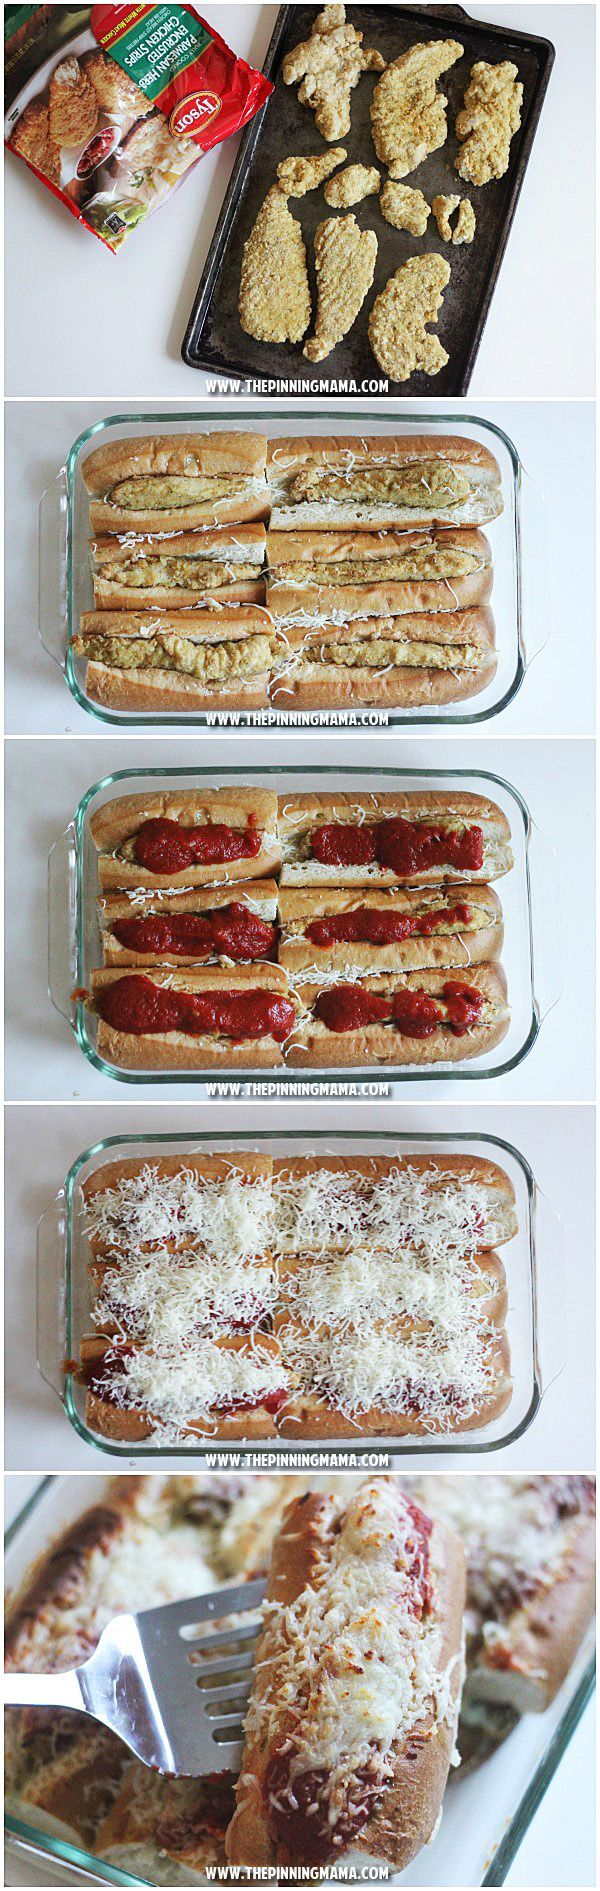 CHICKEN PARM SUB BAKE recipe- Such a great idea for a party! Just minutes of prep for enough to feed a crowd! I think this is the perfect recipe for our Super Bowl Party! #deliciousgametime AD